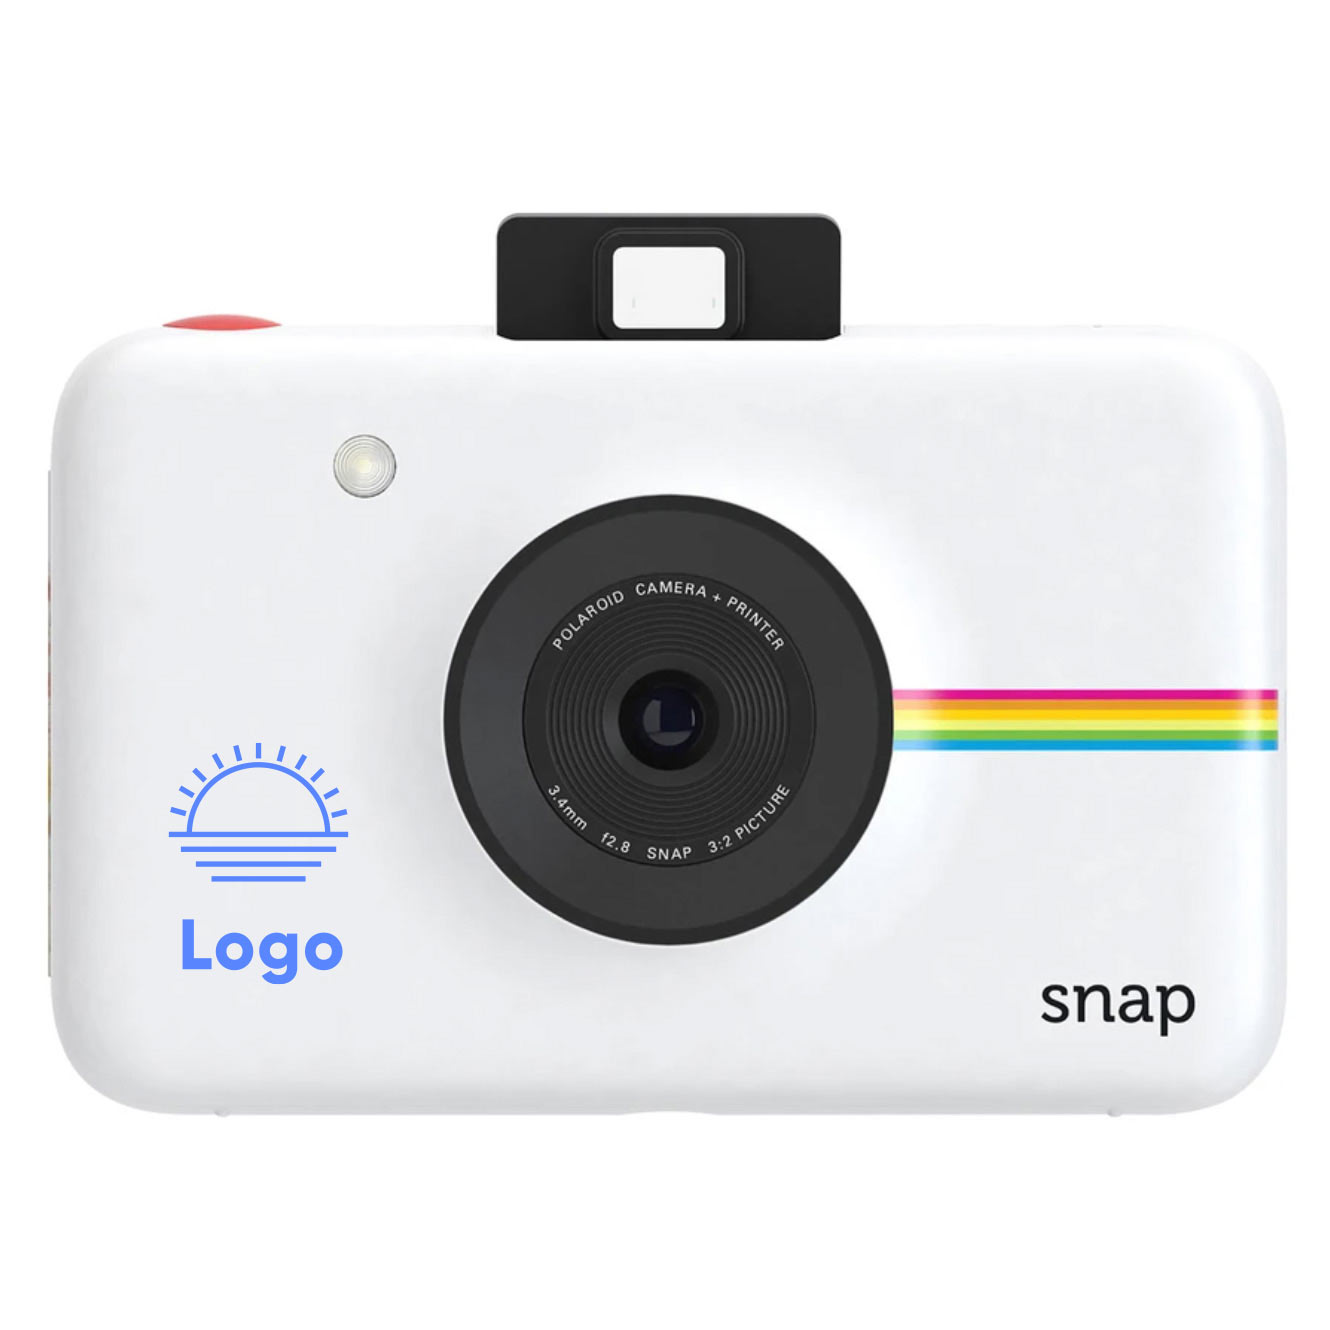 317686 snap camera one color one location imprint